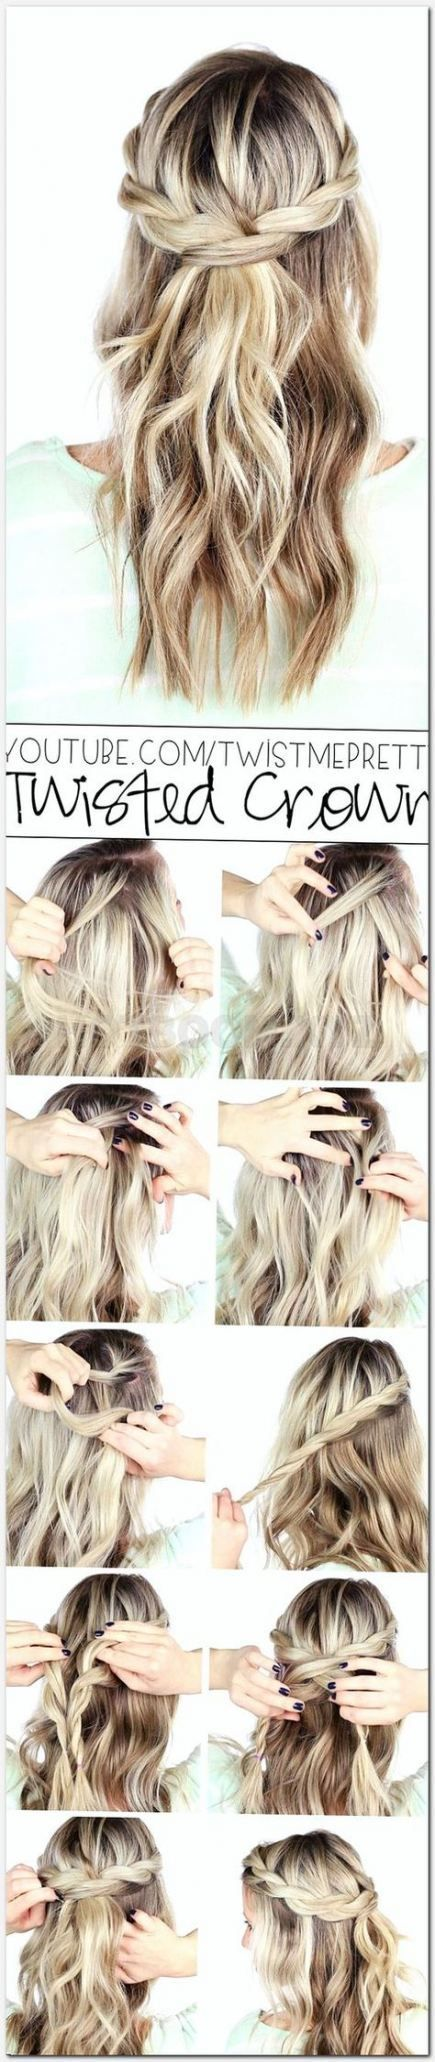 Trendy hairstyles for medium length hair round face curly 29 Ideas